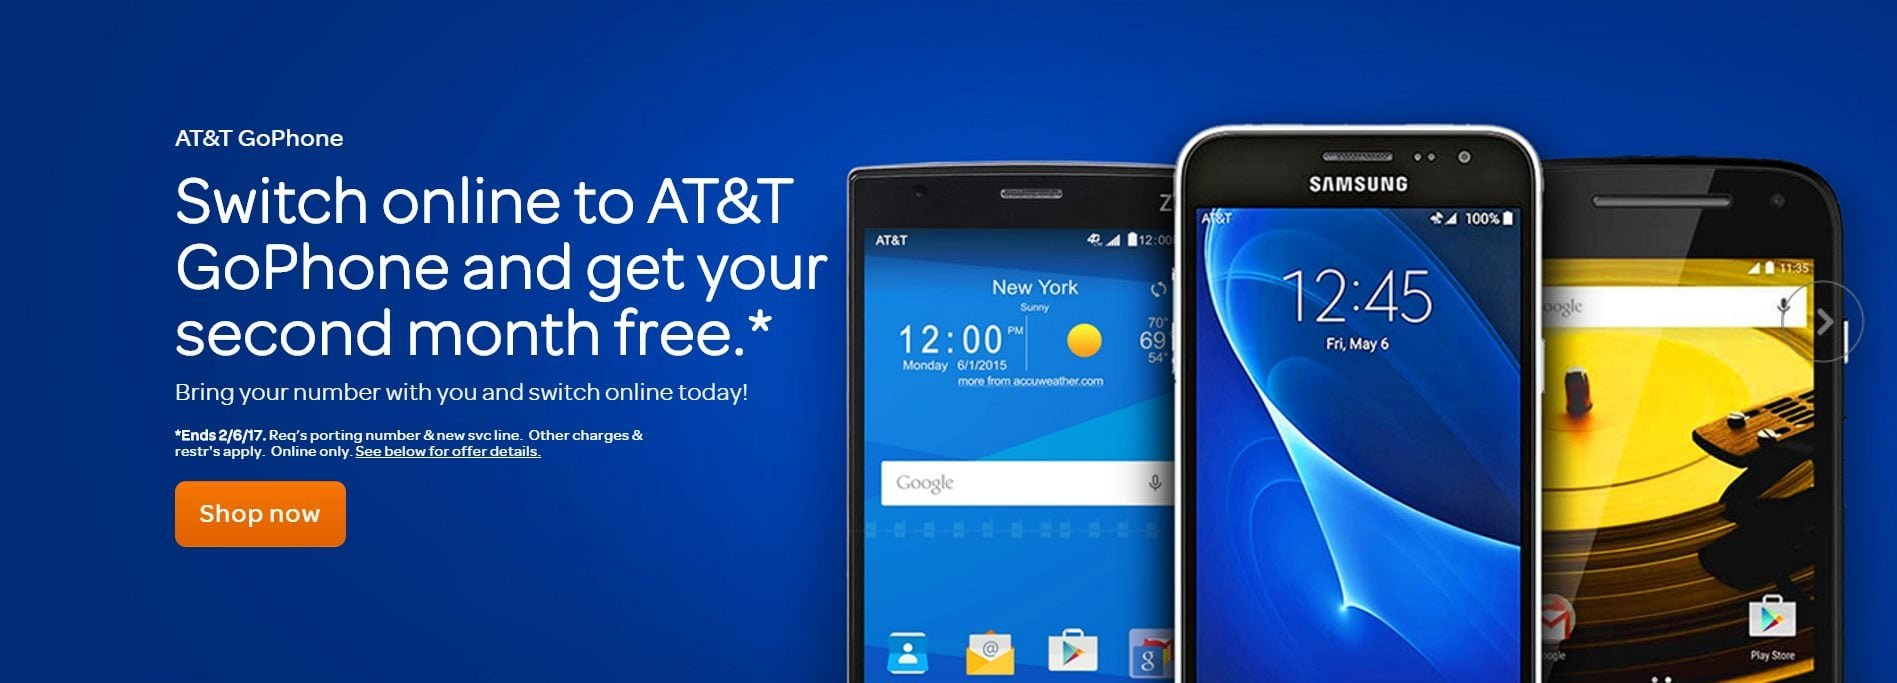 ATT GoPhone Promotion Free Month Of Service